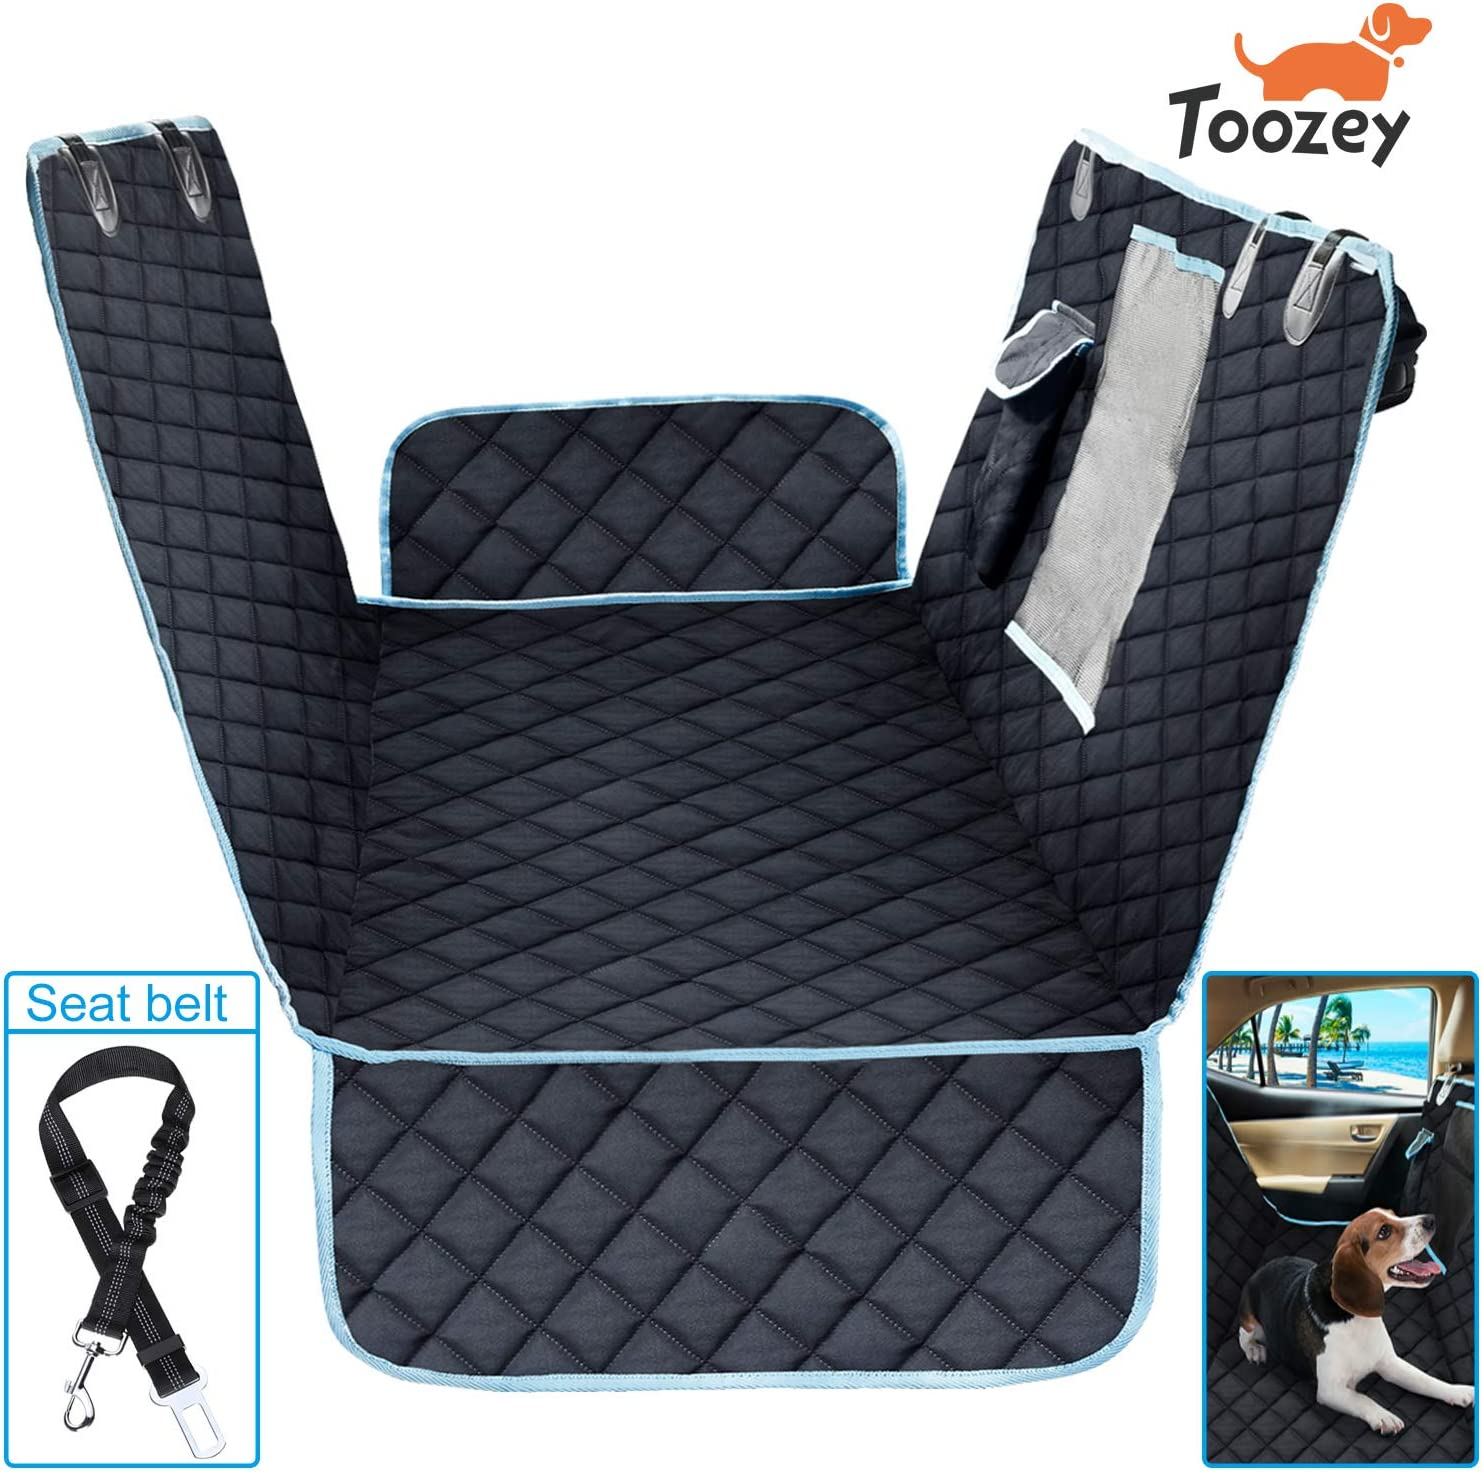 Toozey Waterproof Dog Car Seat Covers, Durable Scratch Proof Soft Dog Seat Cover for Back Seat with Side Flaps, Slip-Resistant Machine Washable, Compatible for for Cars Trucks and SUV